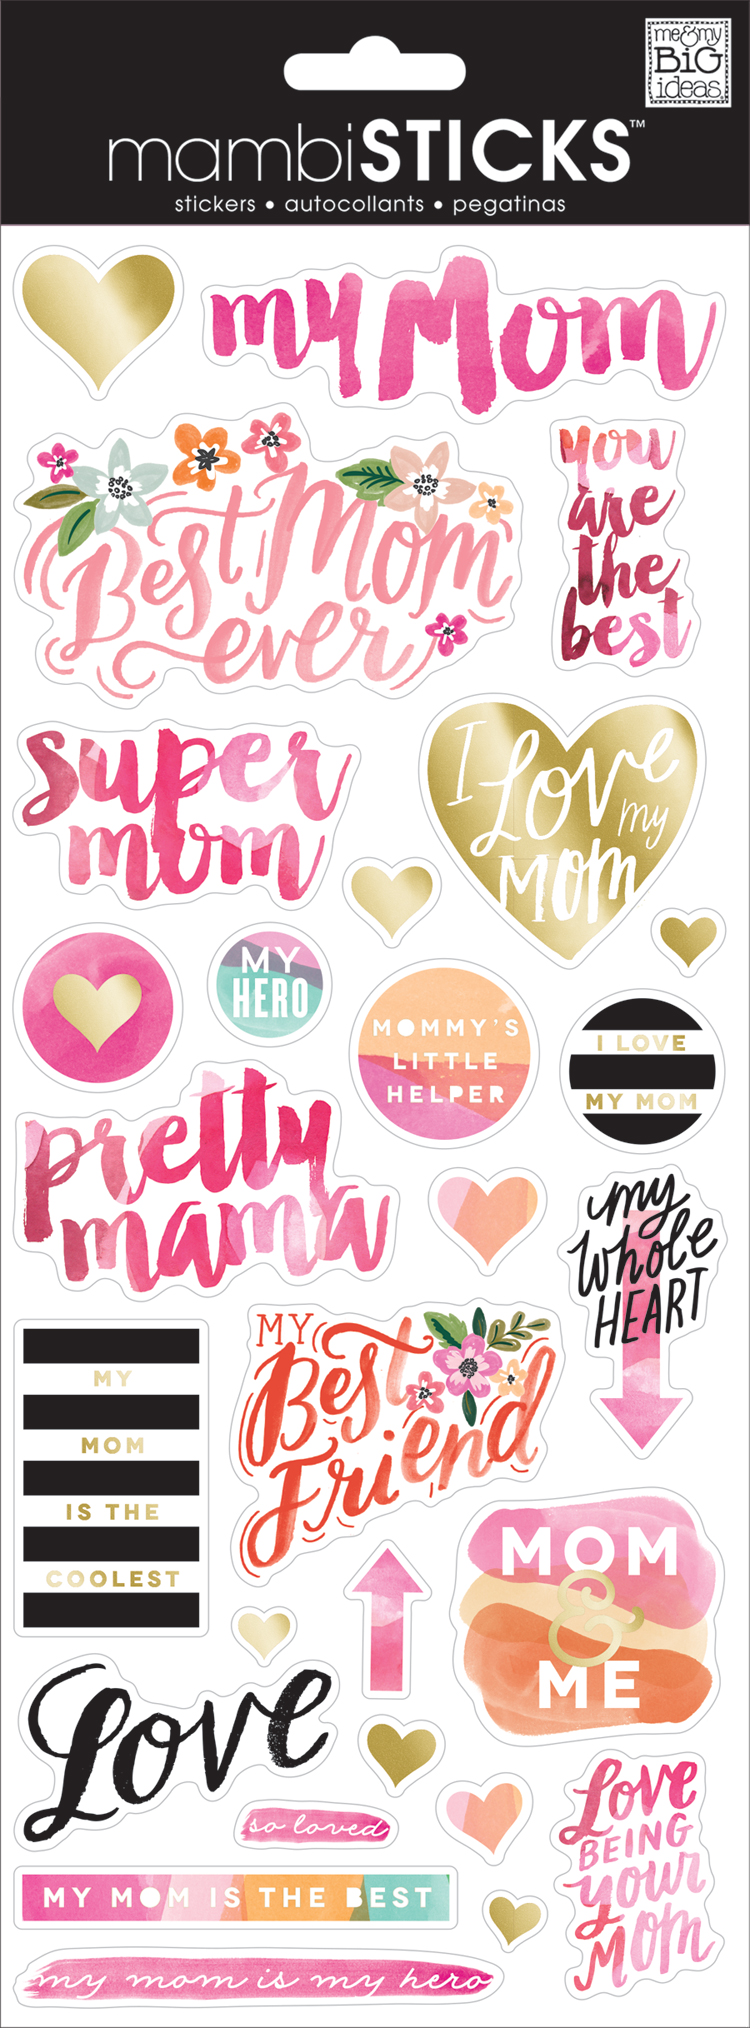 'Super Mom' mambiSTICKS stickers | me & my BIG ideas.jpg